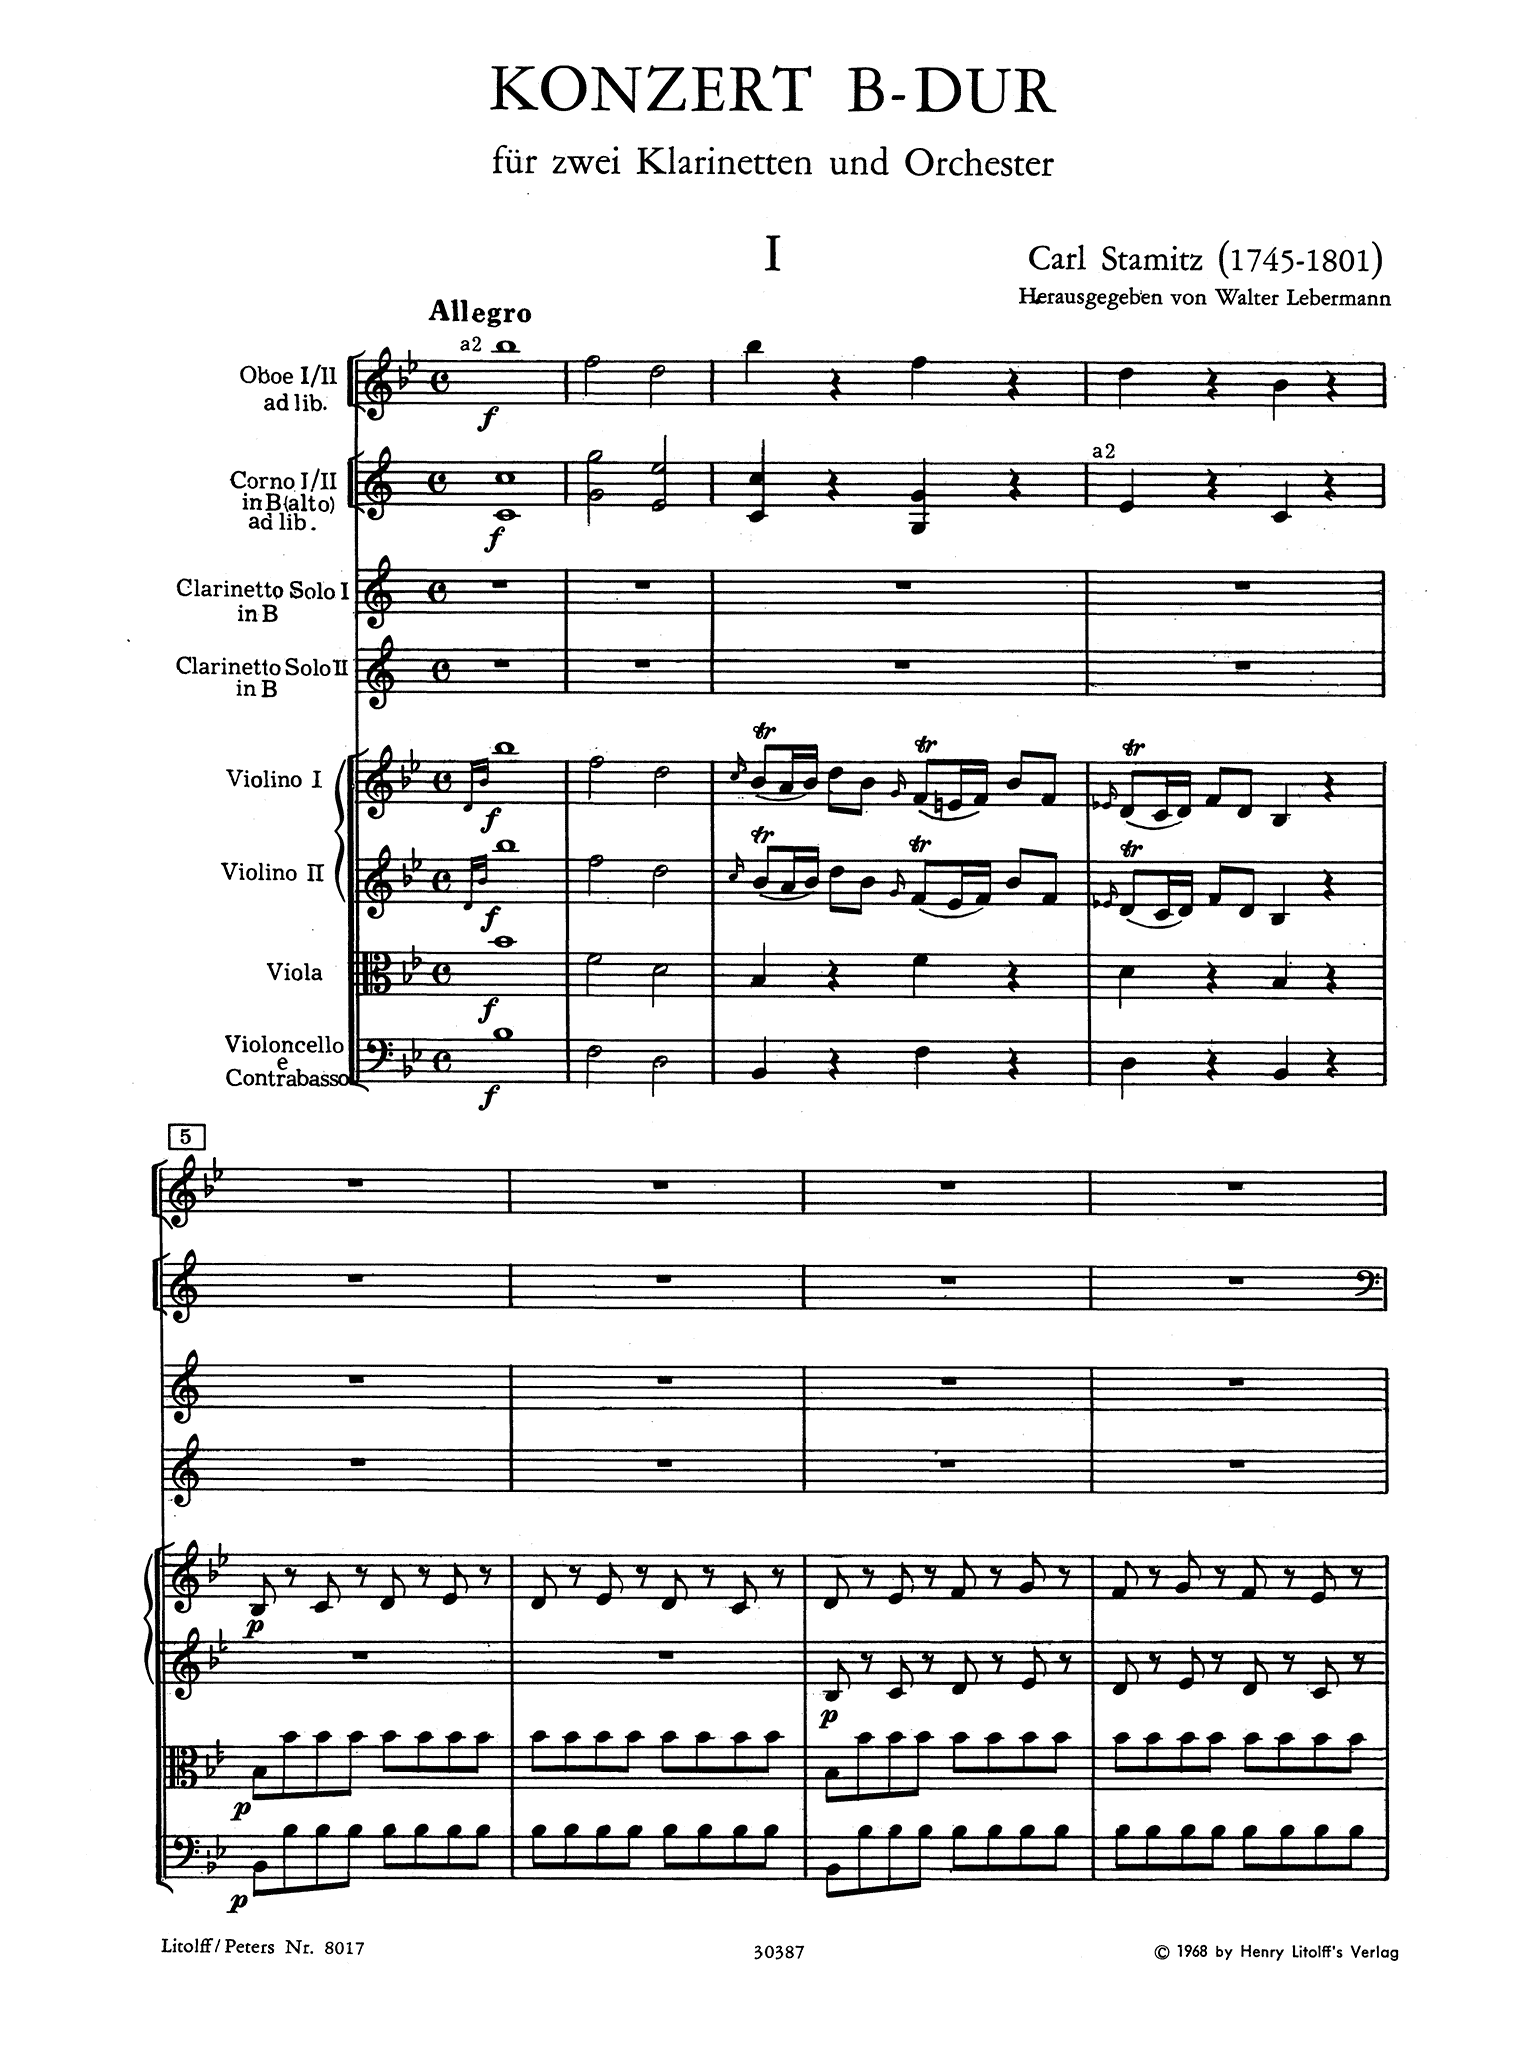 Concerto for 2 Clarinets in B-flat Major - Movement 1